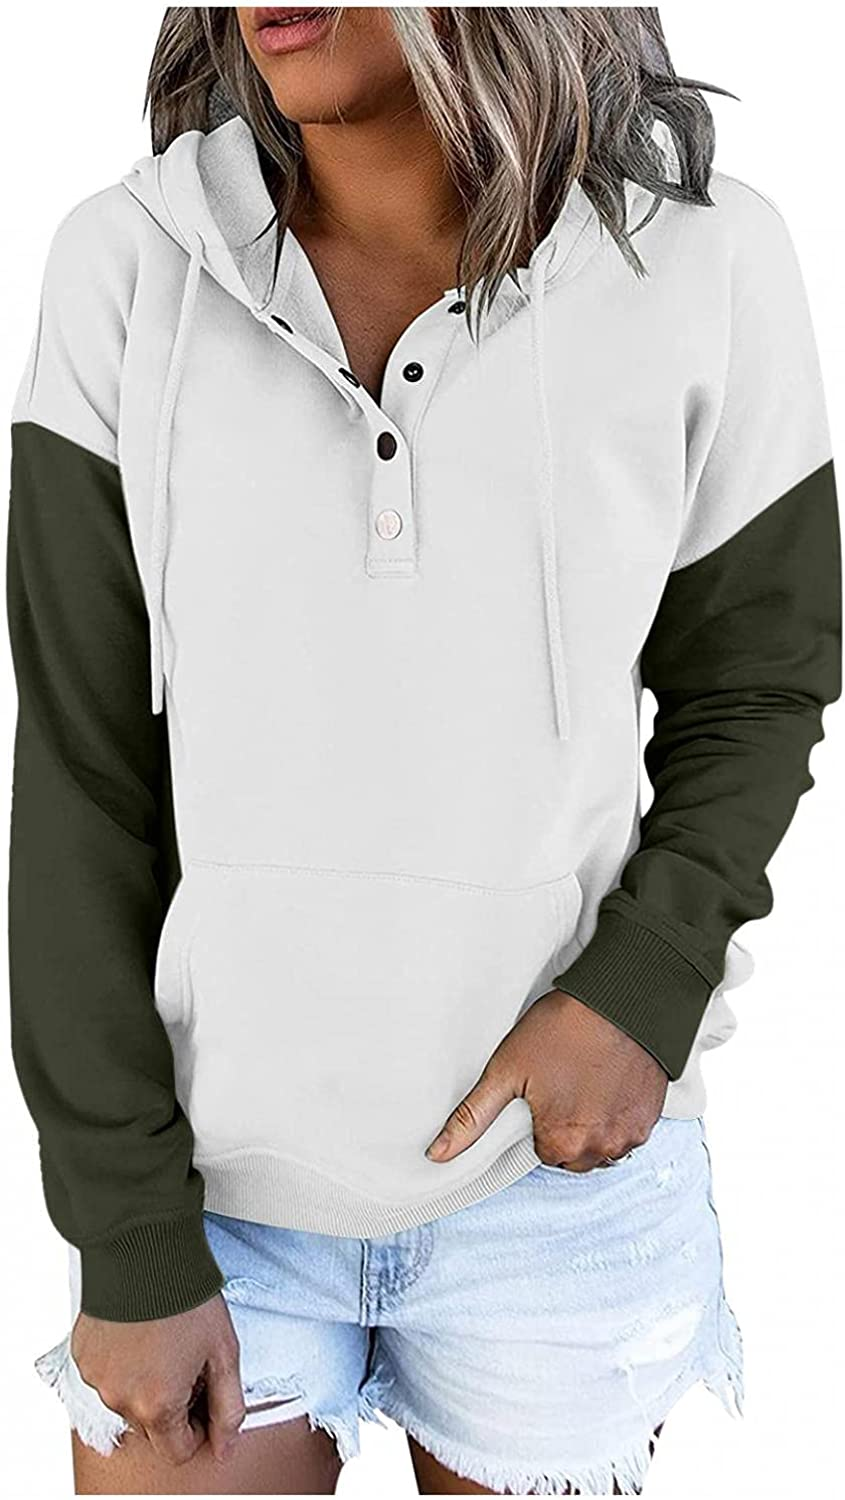 Hoodies for Women,Pullover for Womens Button Down Hoodies Drawstring Hooded Long Sleeve Sweatshirts with Pocket